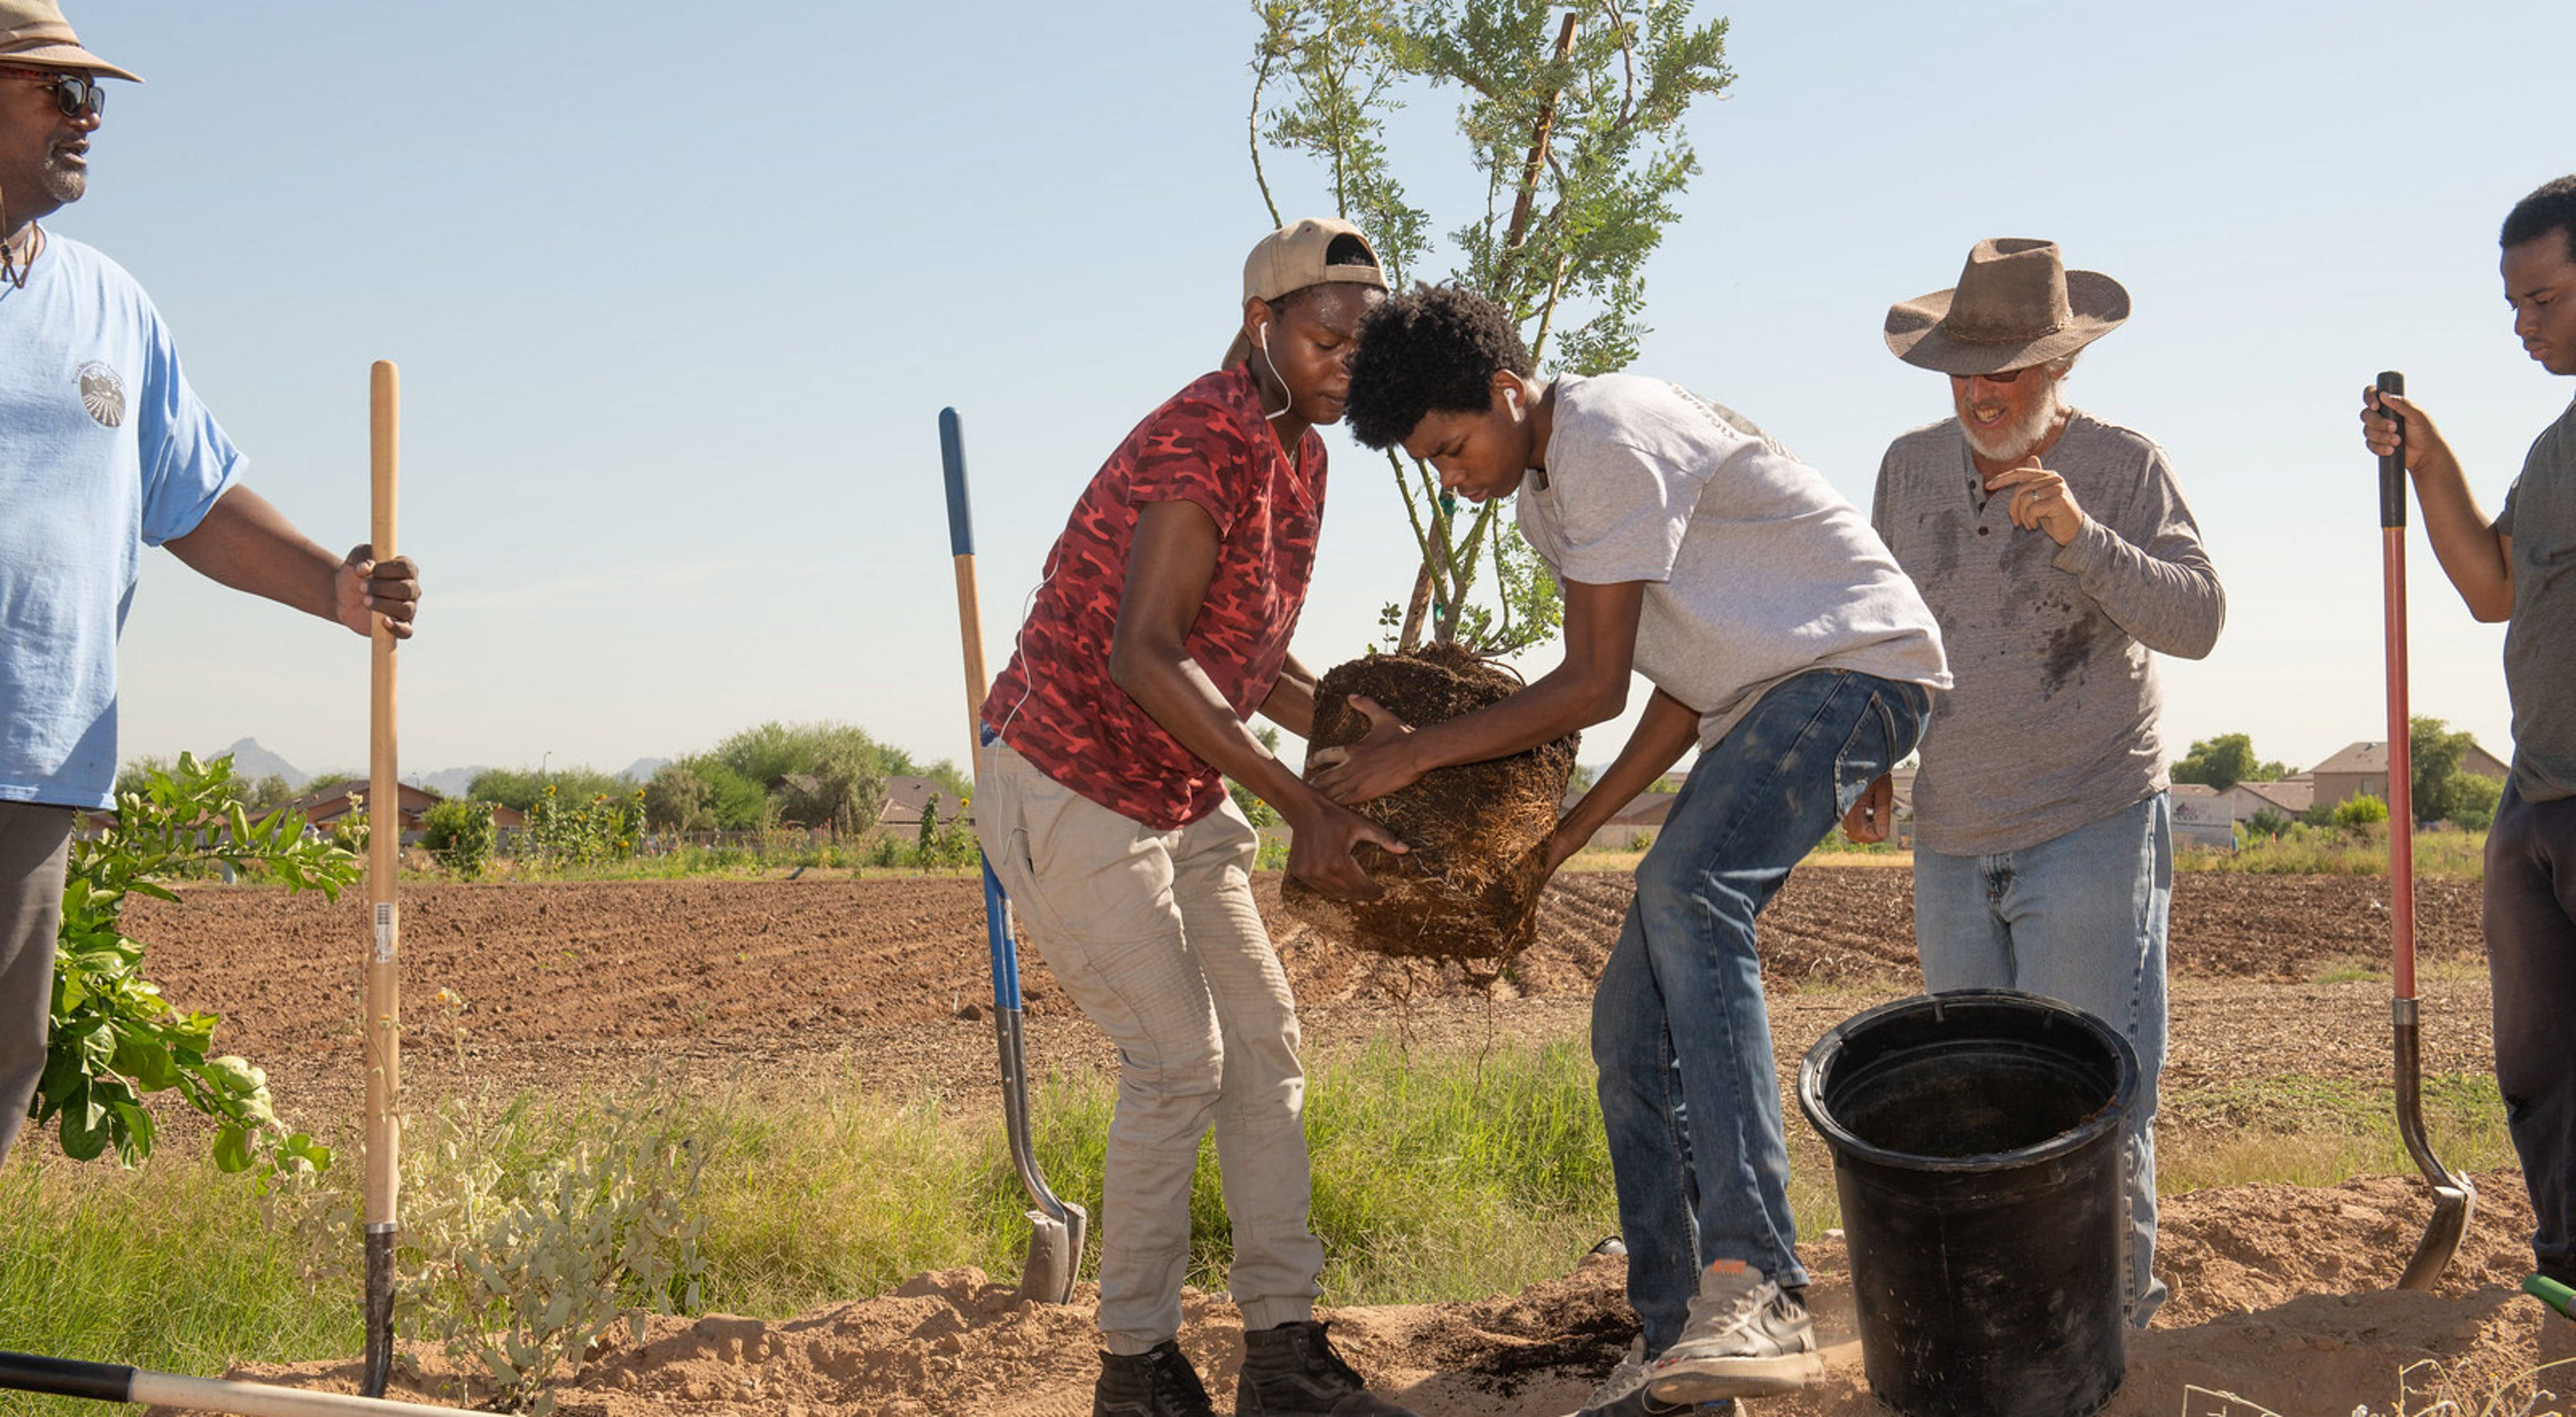 Two volunteers place a small tree into a hole in an arid landscape.